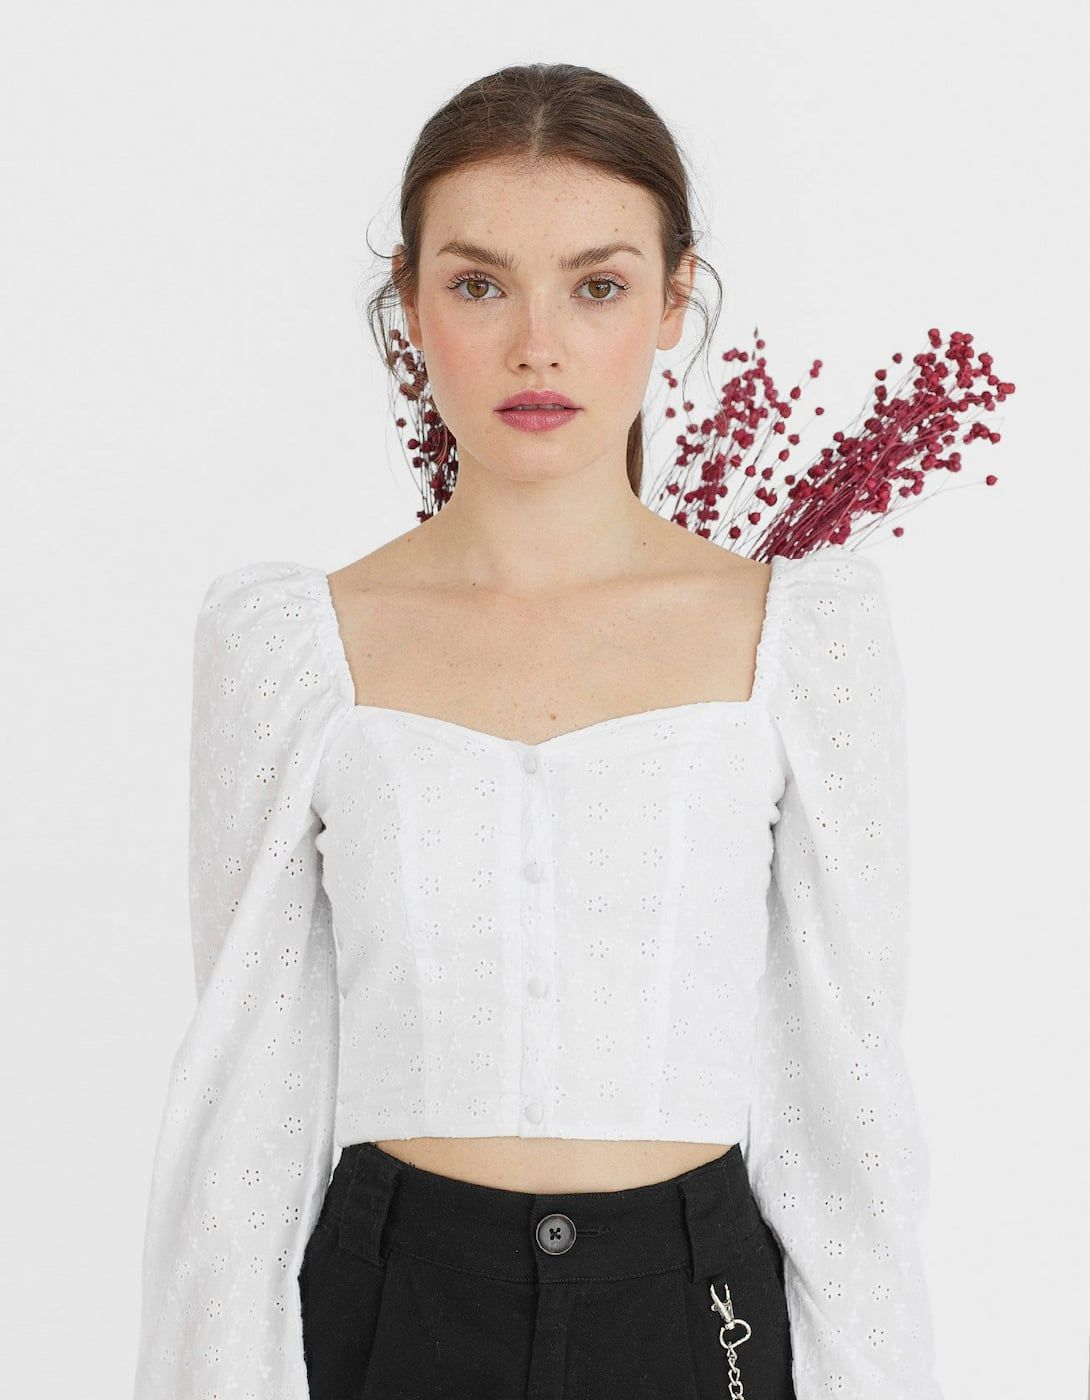 c000987b035 Swiss embroidered top with sweetheart neckline - Just In | Stradivarius  United Kingdom